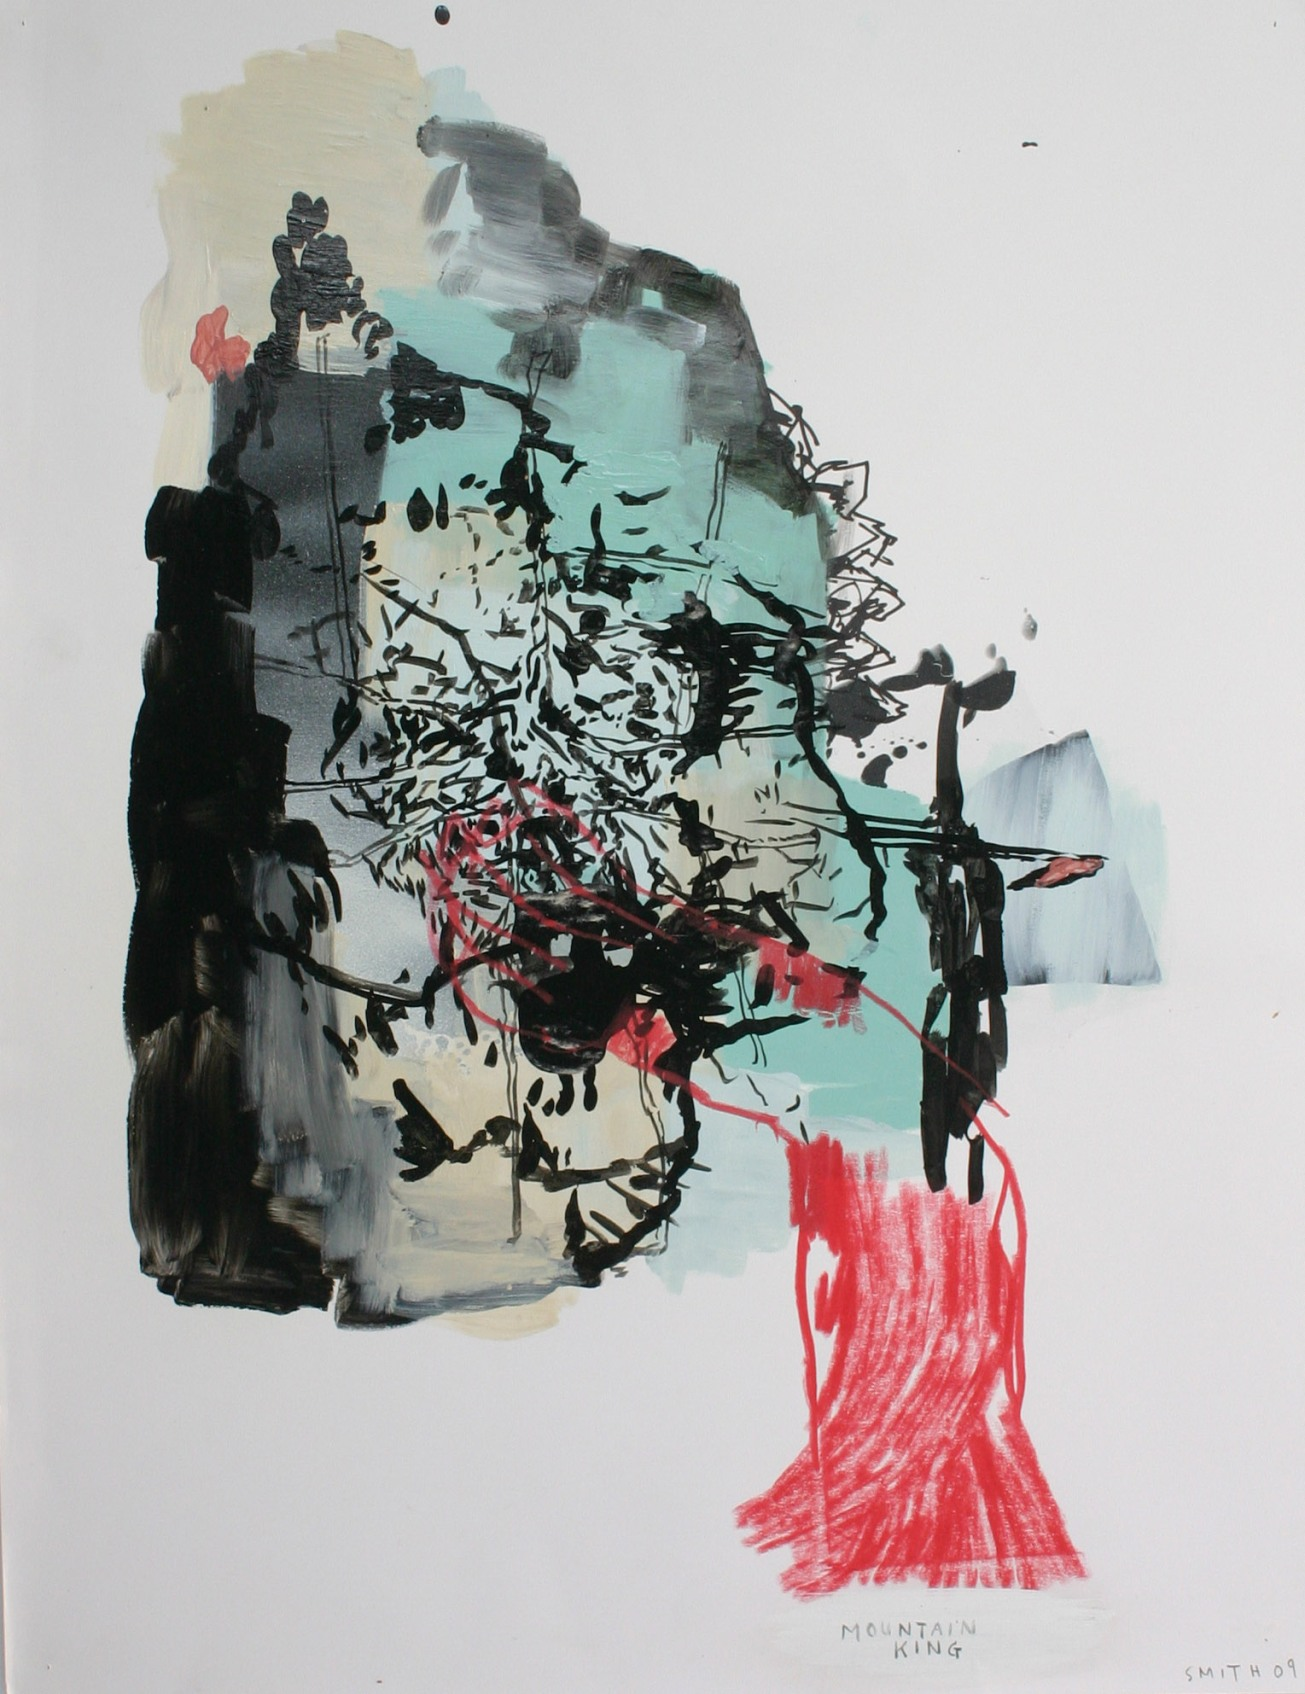 Emma Smith, The mountain king, Mixed media on paper, 420 x 594 mm 2010